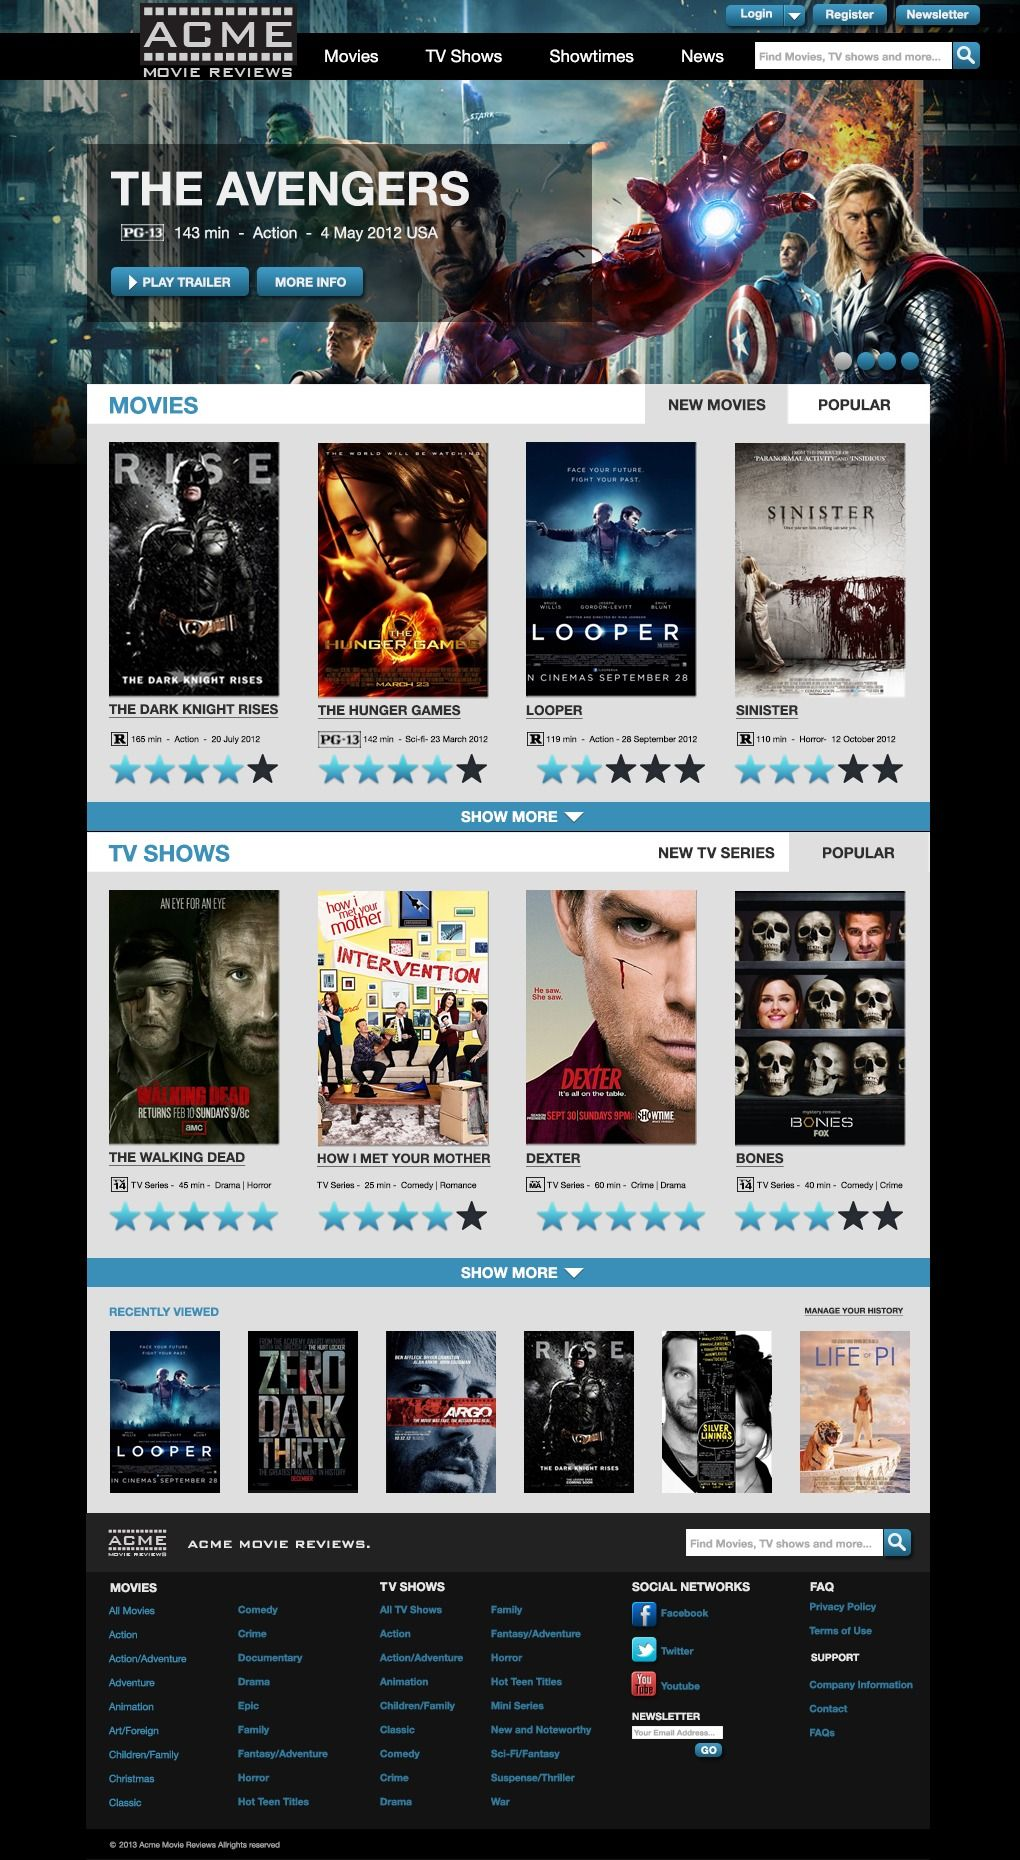 Movie Review Website Free Psd Template  Free Psd Templates